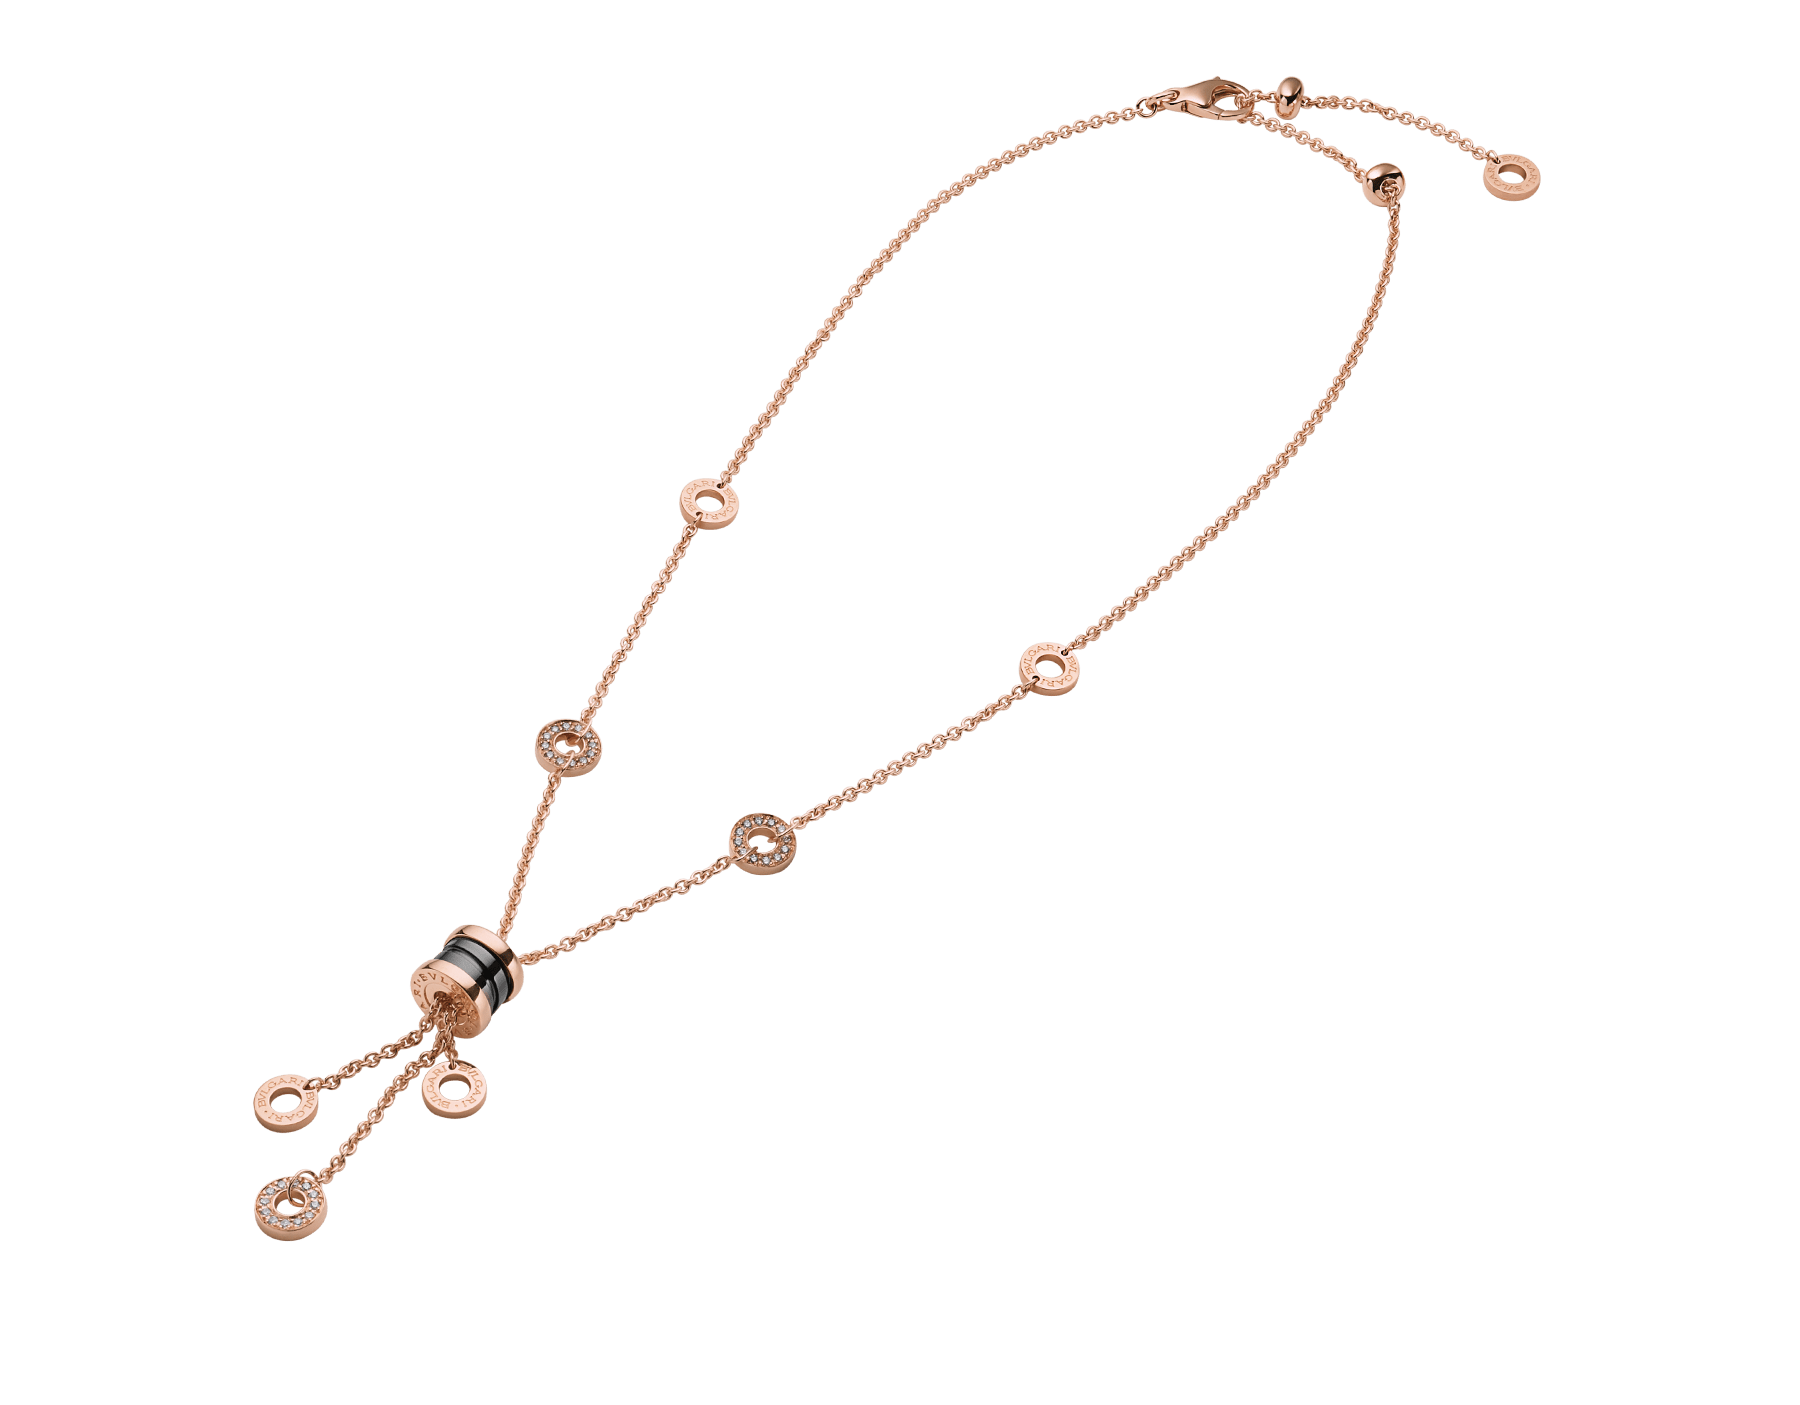 B.zero1 necklace with 18 kt rose gold chain set with pavé diamonds and pendant in 18 kt rose gold and black ceramic. 347578 image 2